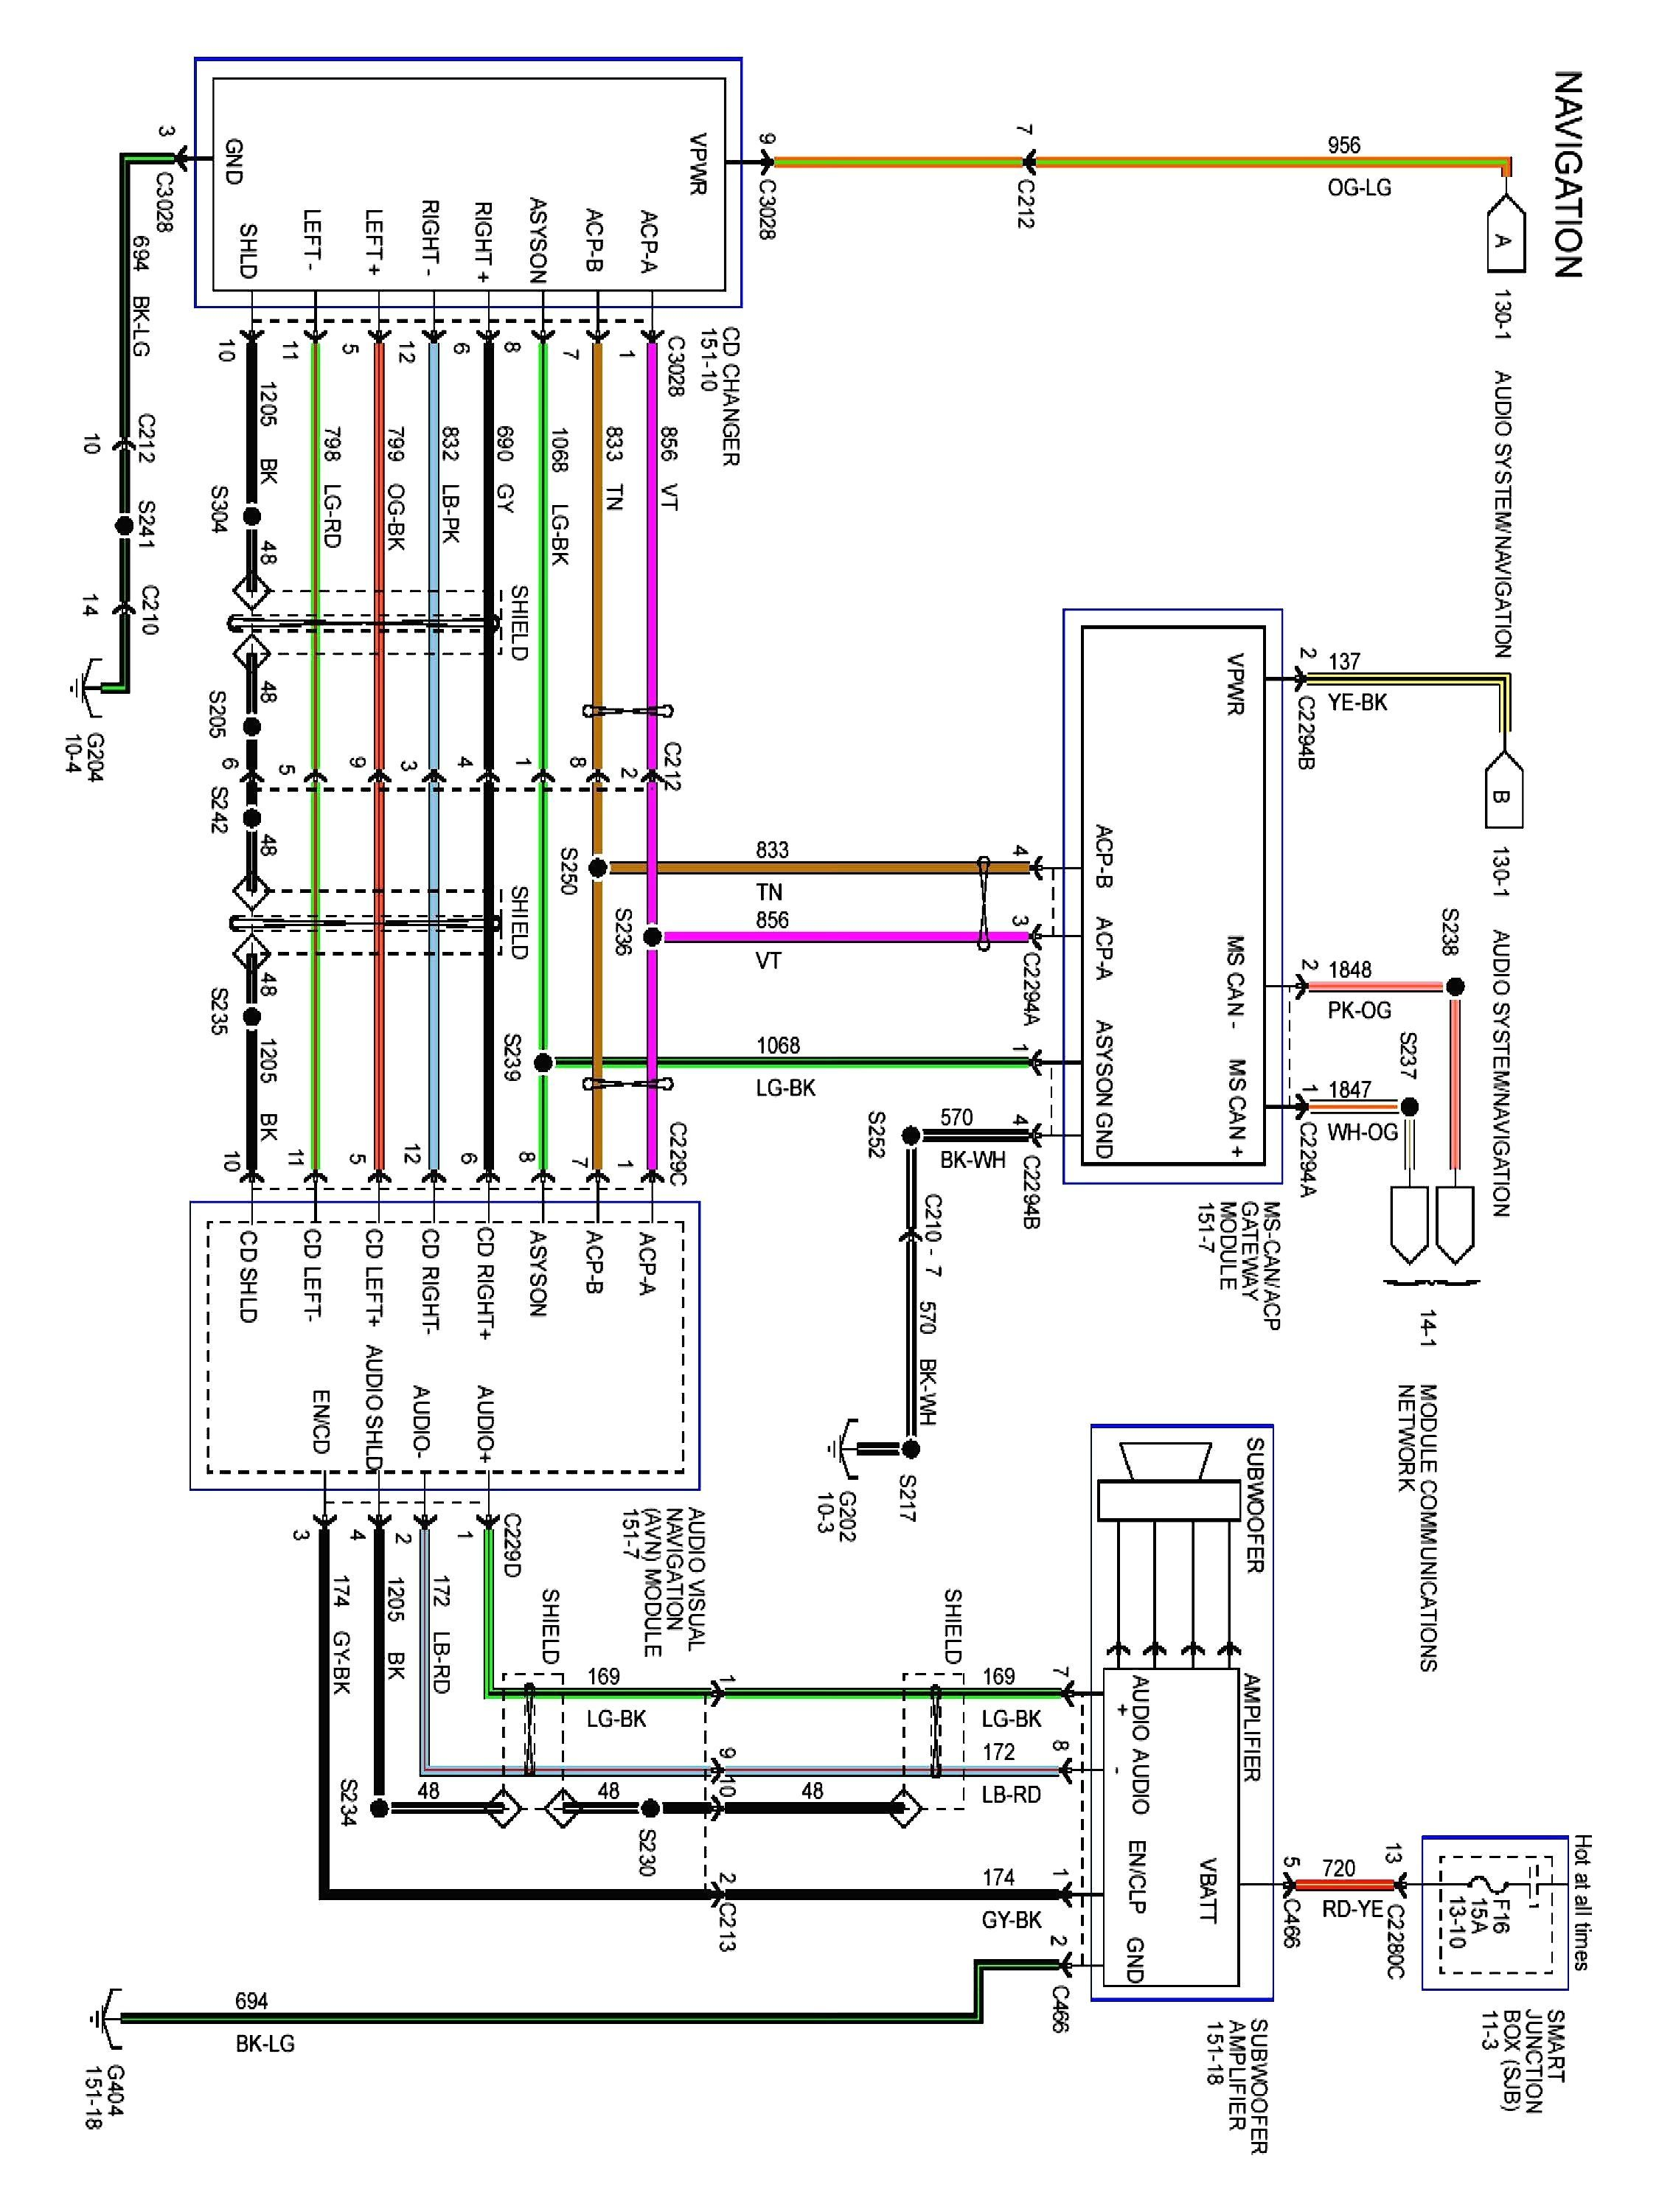 2003 Ford Expedition Fuel Pump Wiring Diagram Ford Expedition Electrical Wiring Diagram Trailer Wiring Diagram